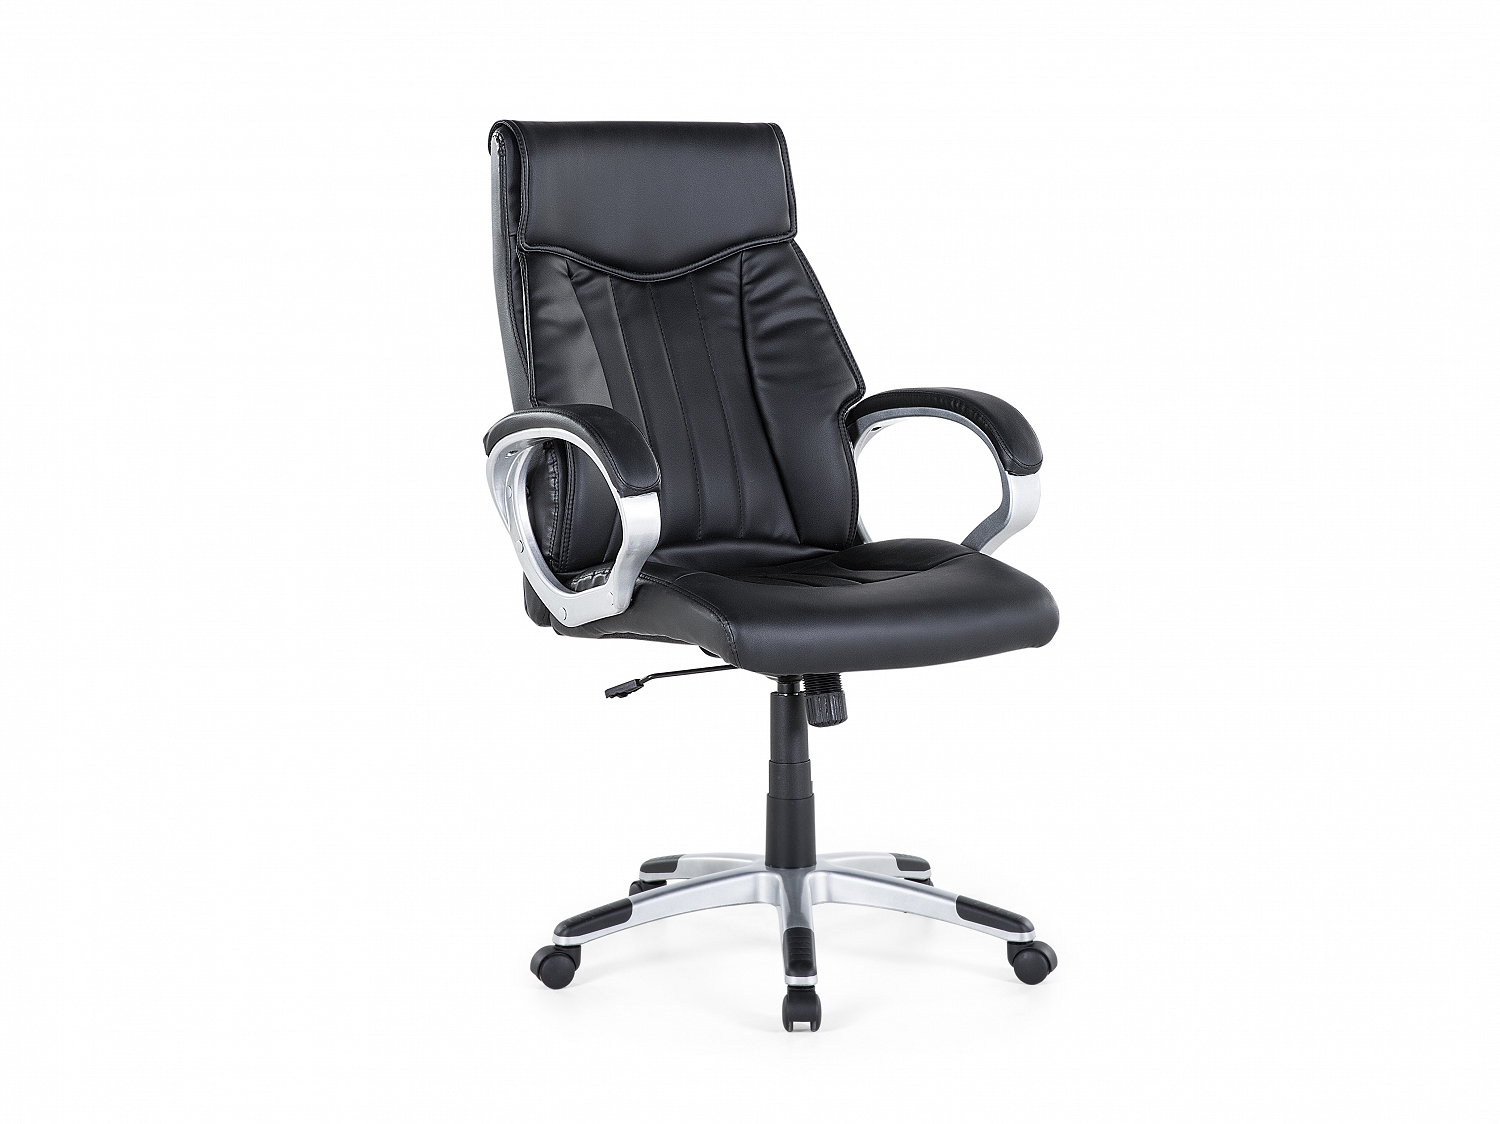 Ergonomic Swivel Office Chair Office Chair Swivel Chair Faux Leather Ergonomic Desk